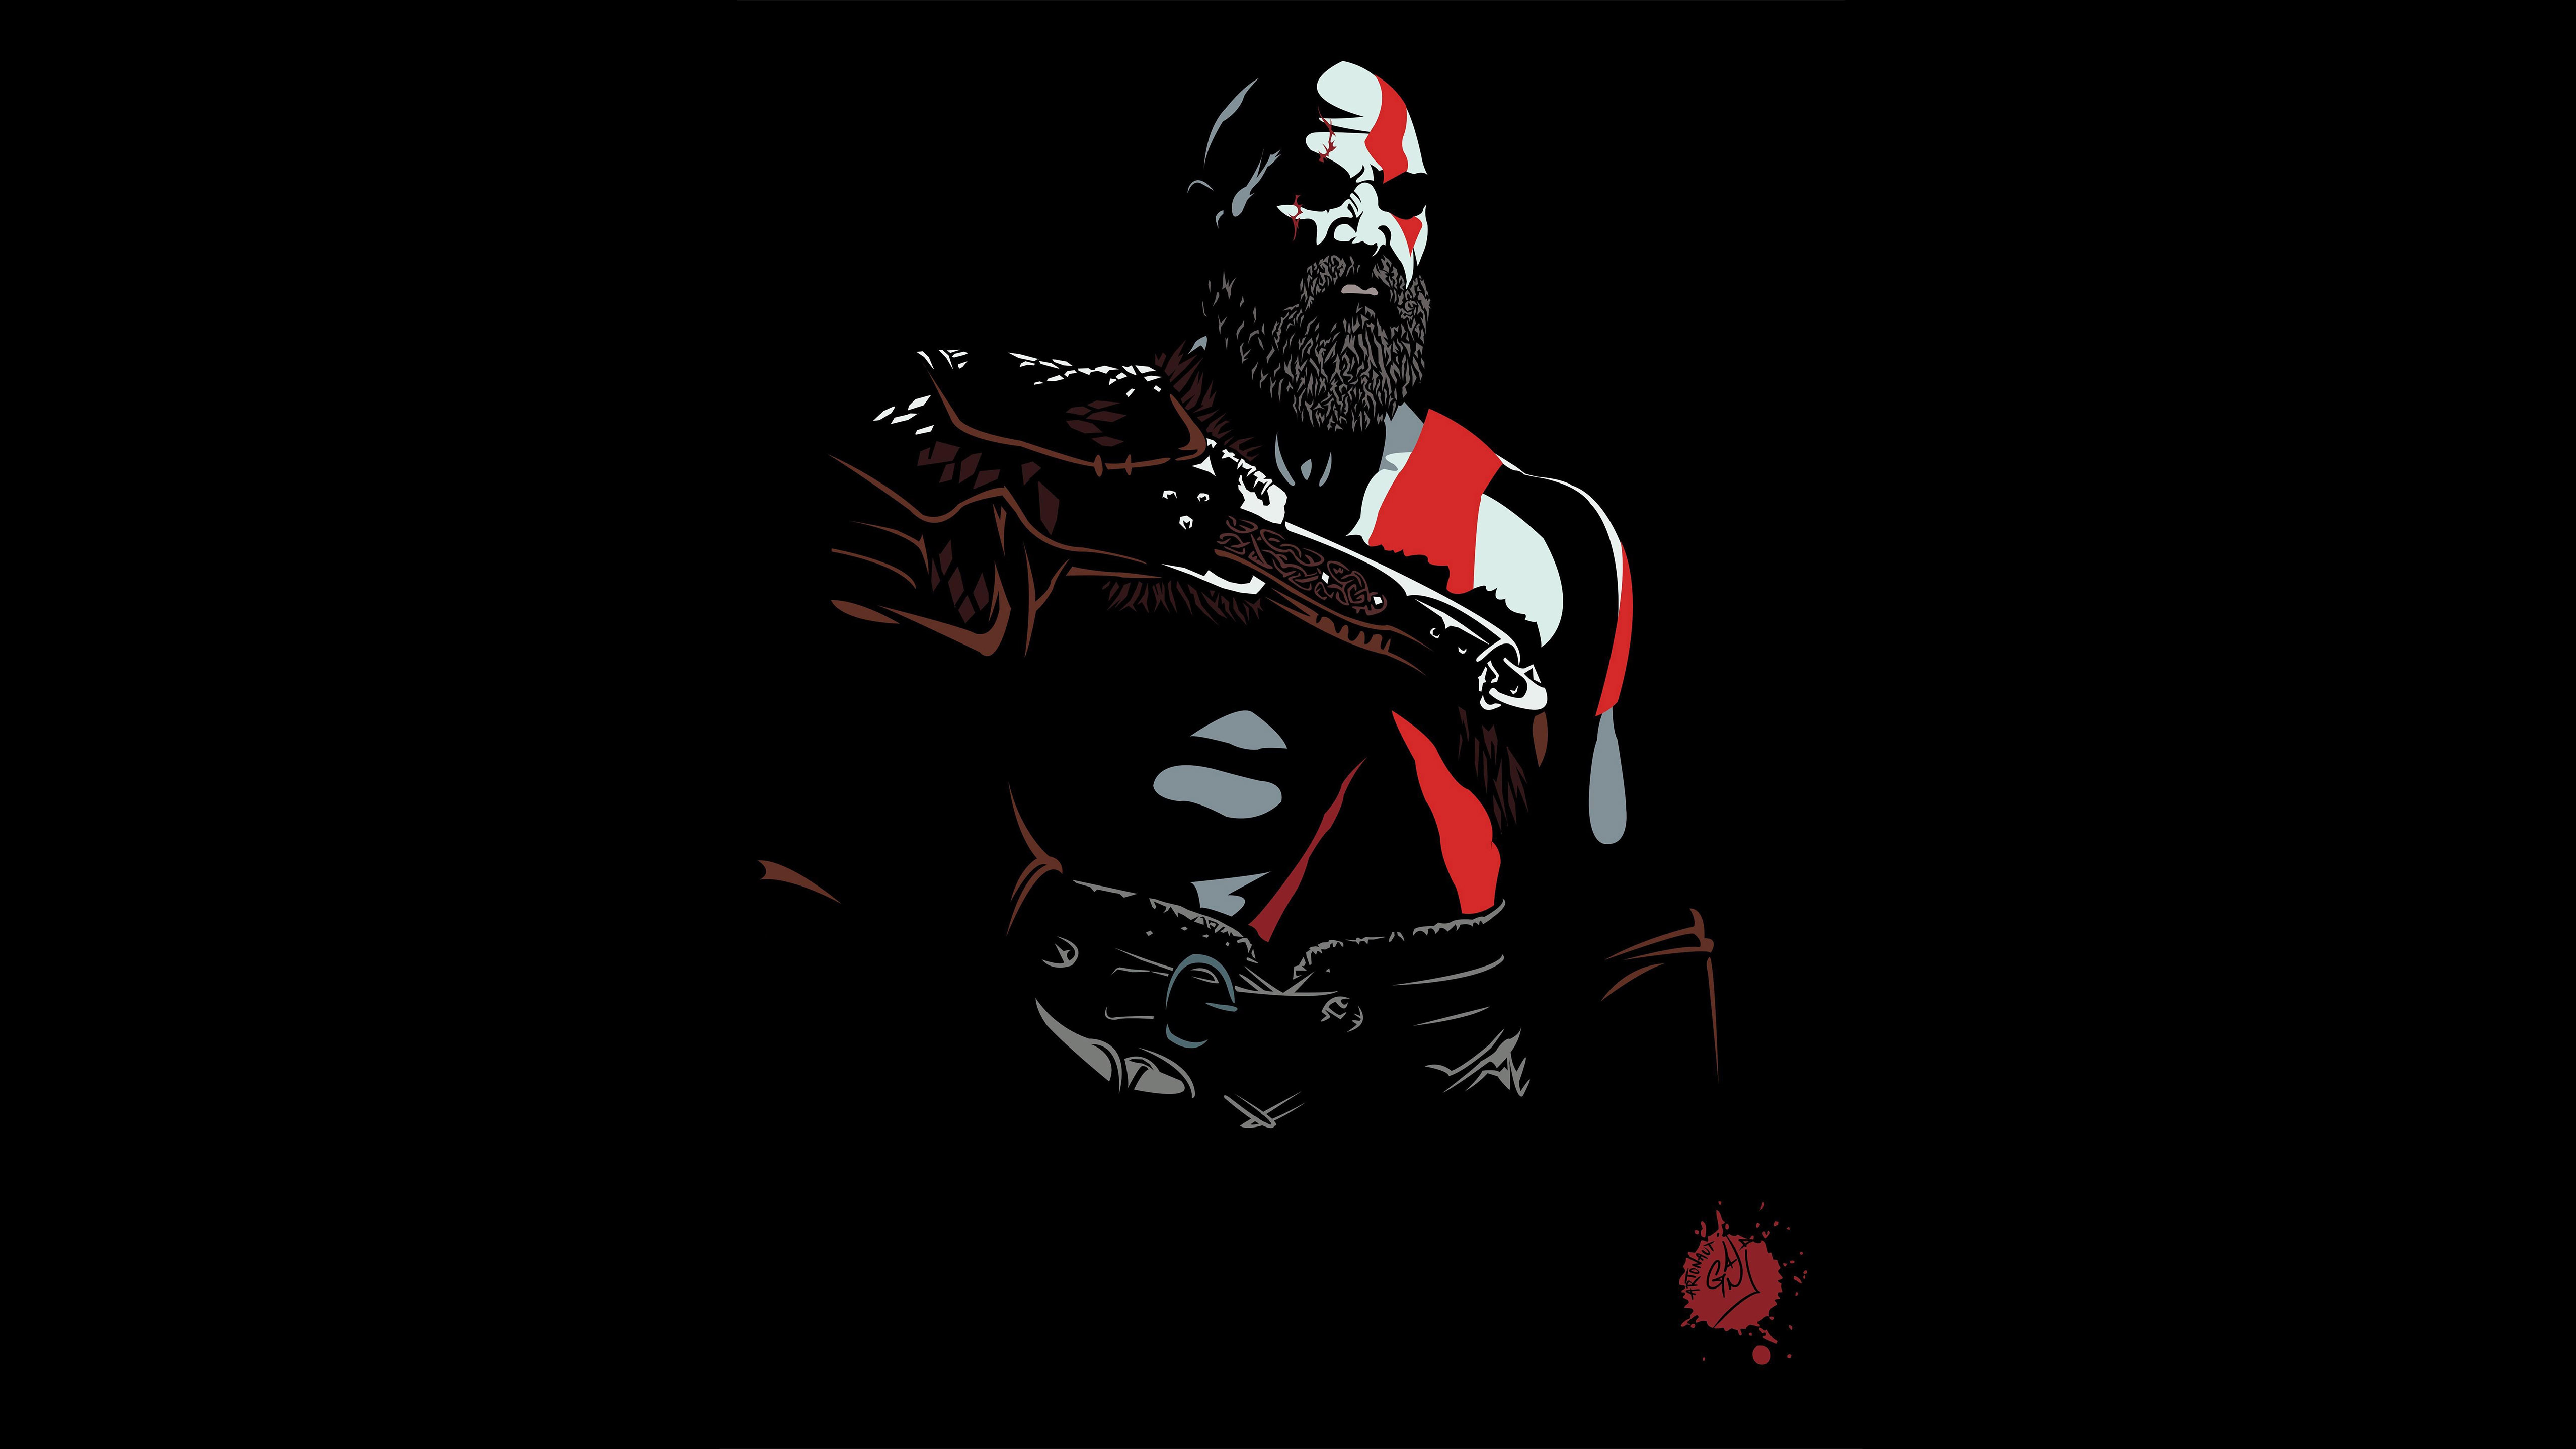 480x854 Kratos God Of War 5k Android One Hd 4k Wallpapers Images